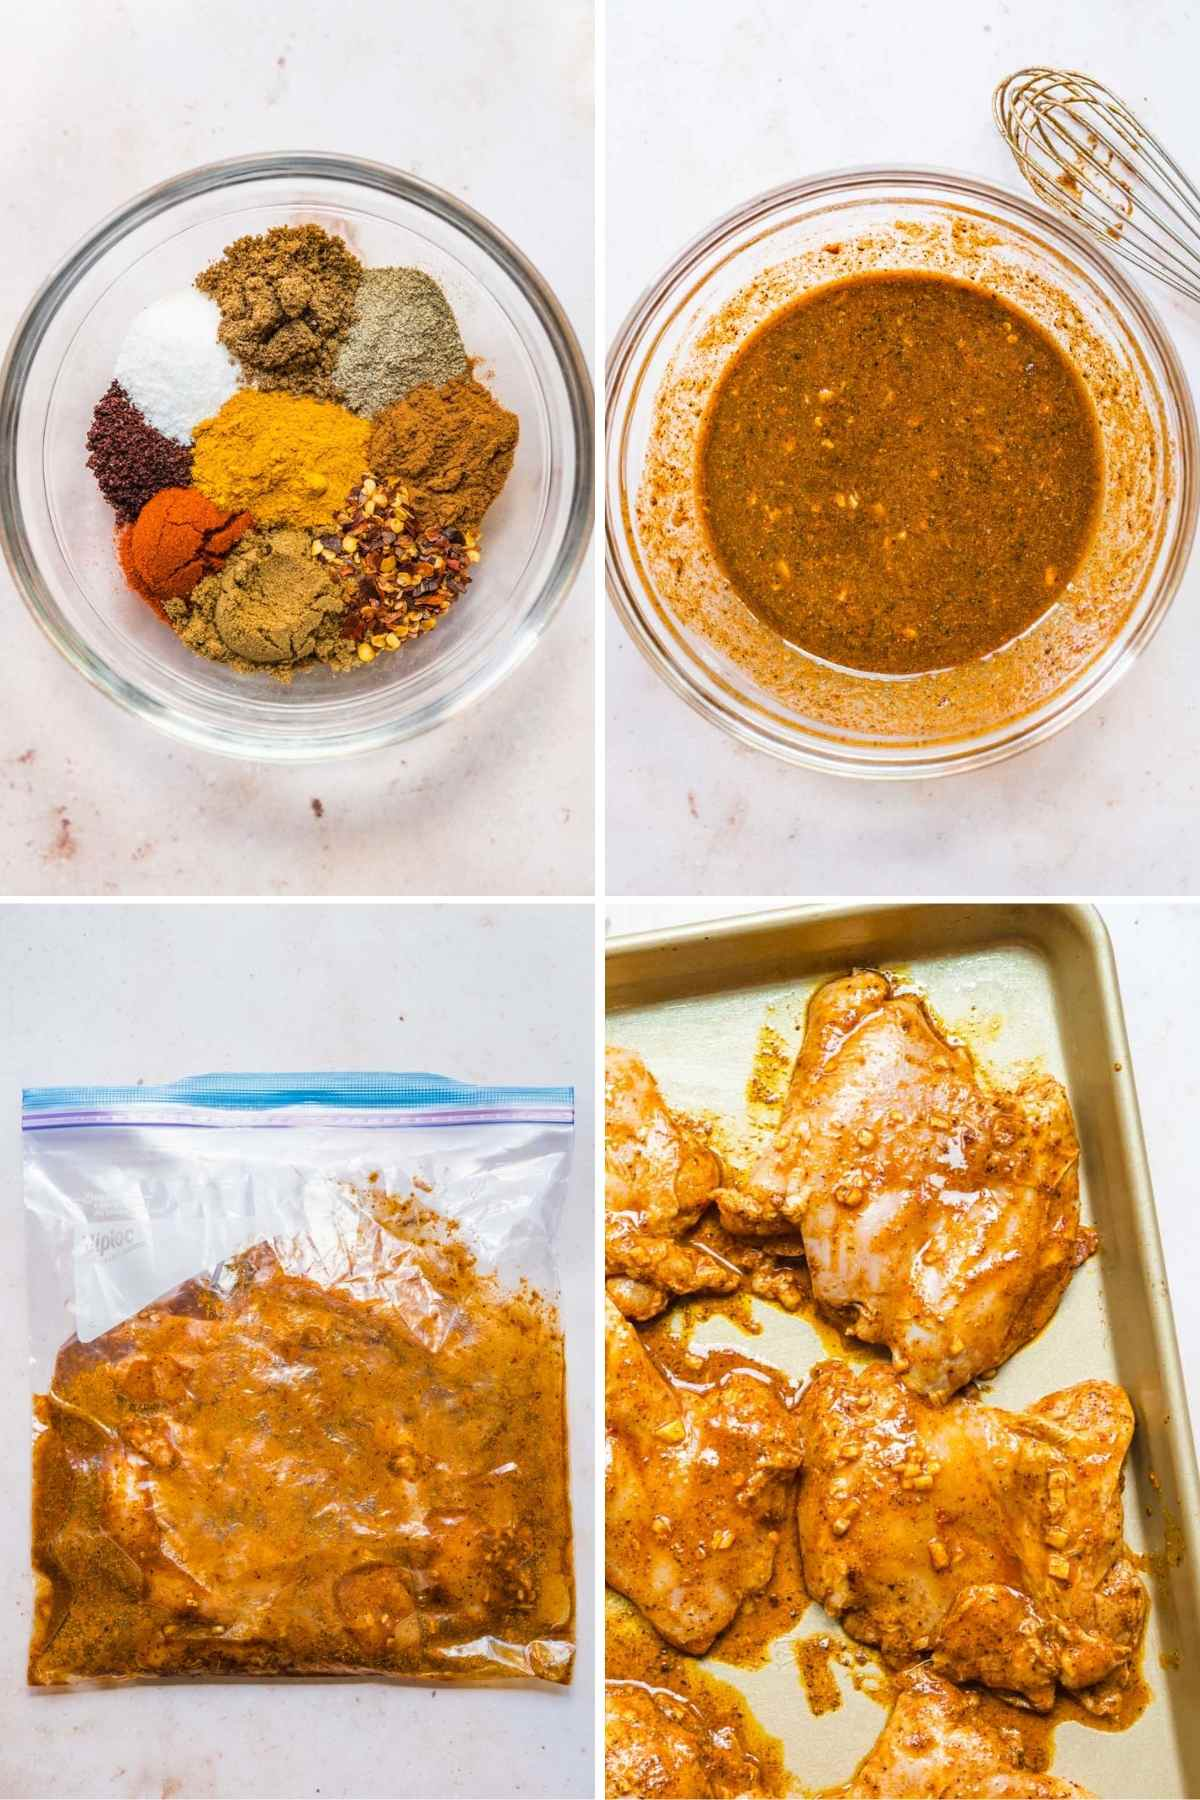 Chicken Shawarma collage of steps making sauce, marinating chicken, and placed on baking sheet